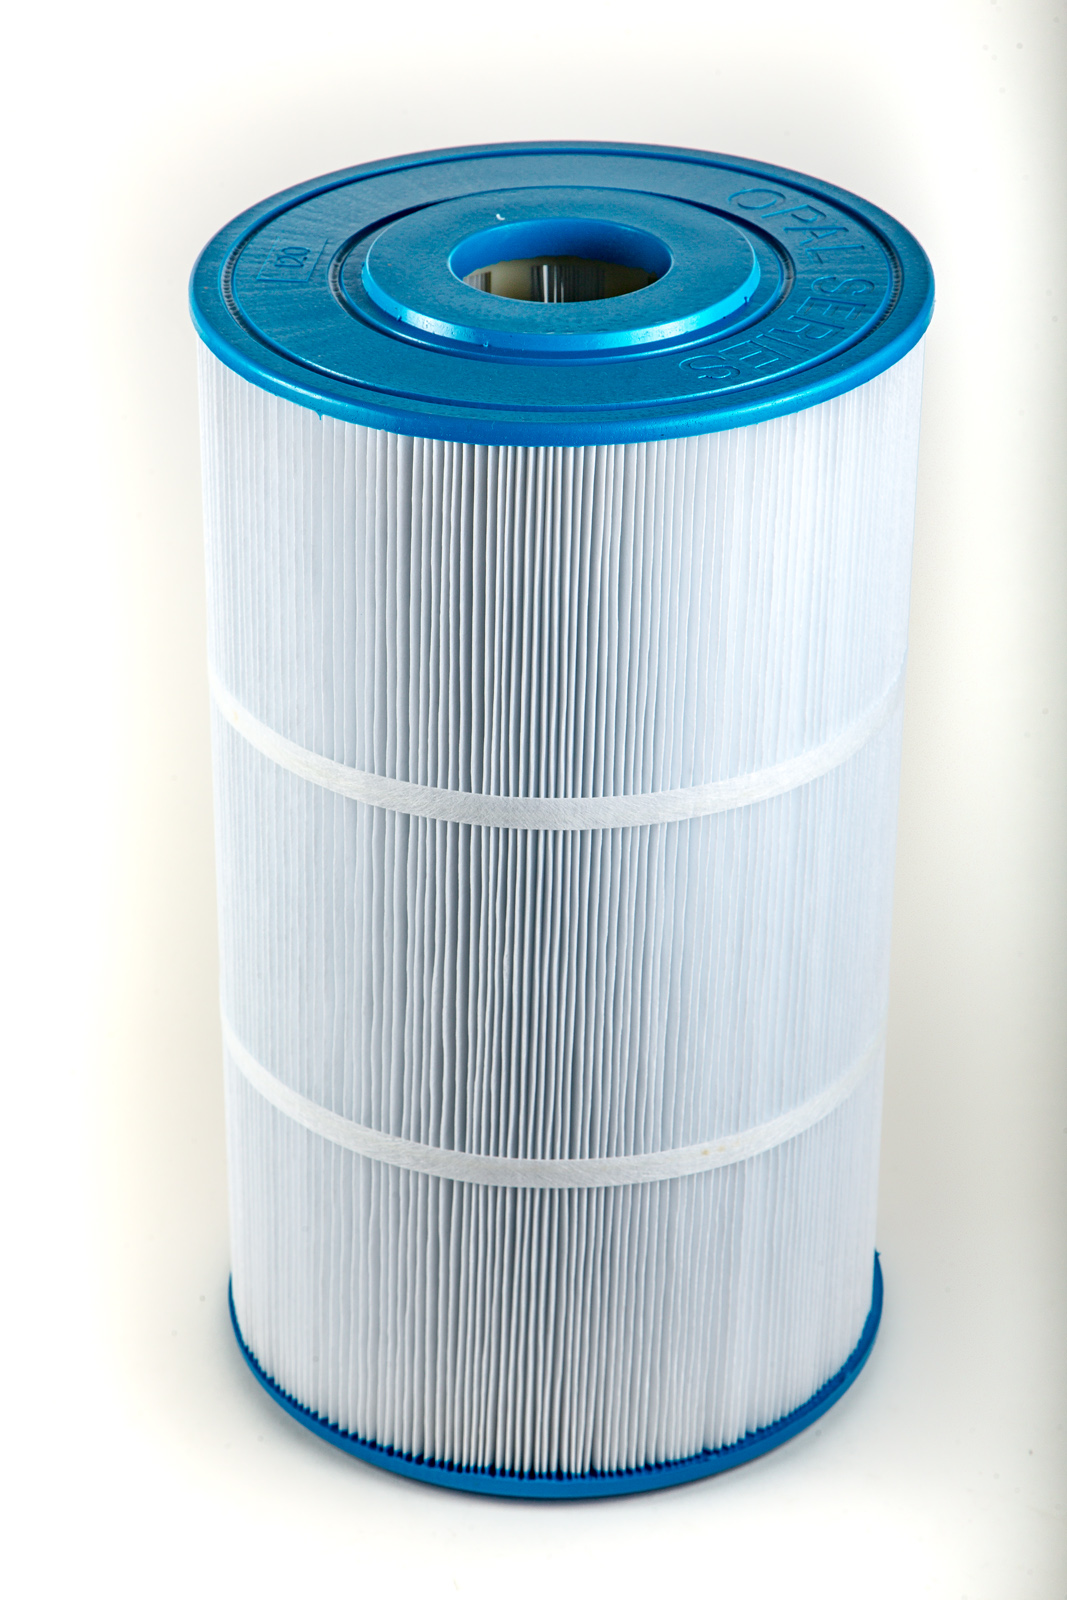 Pool Cartridge Filter System